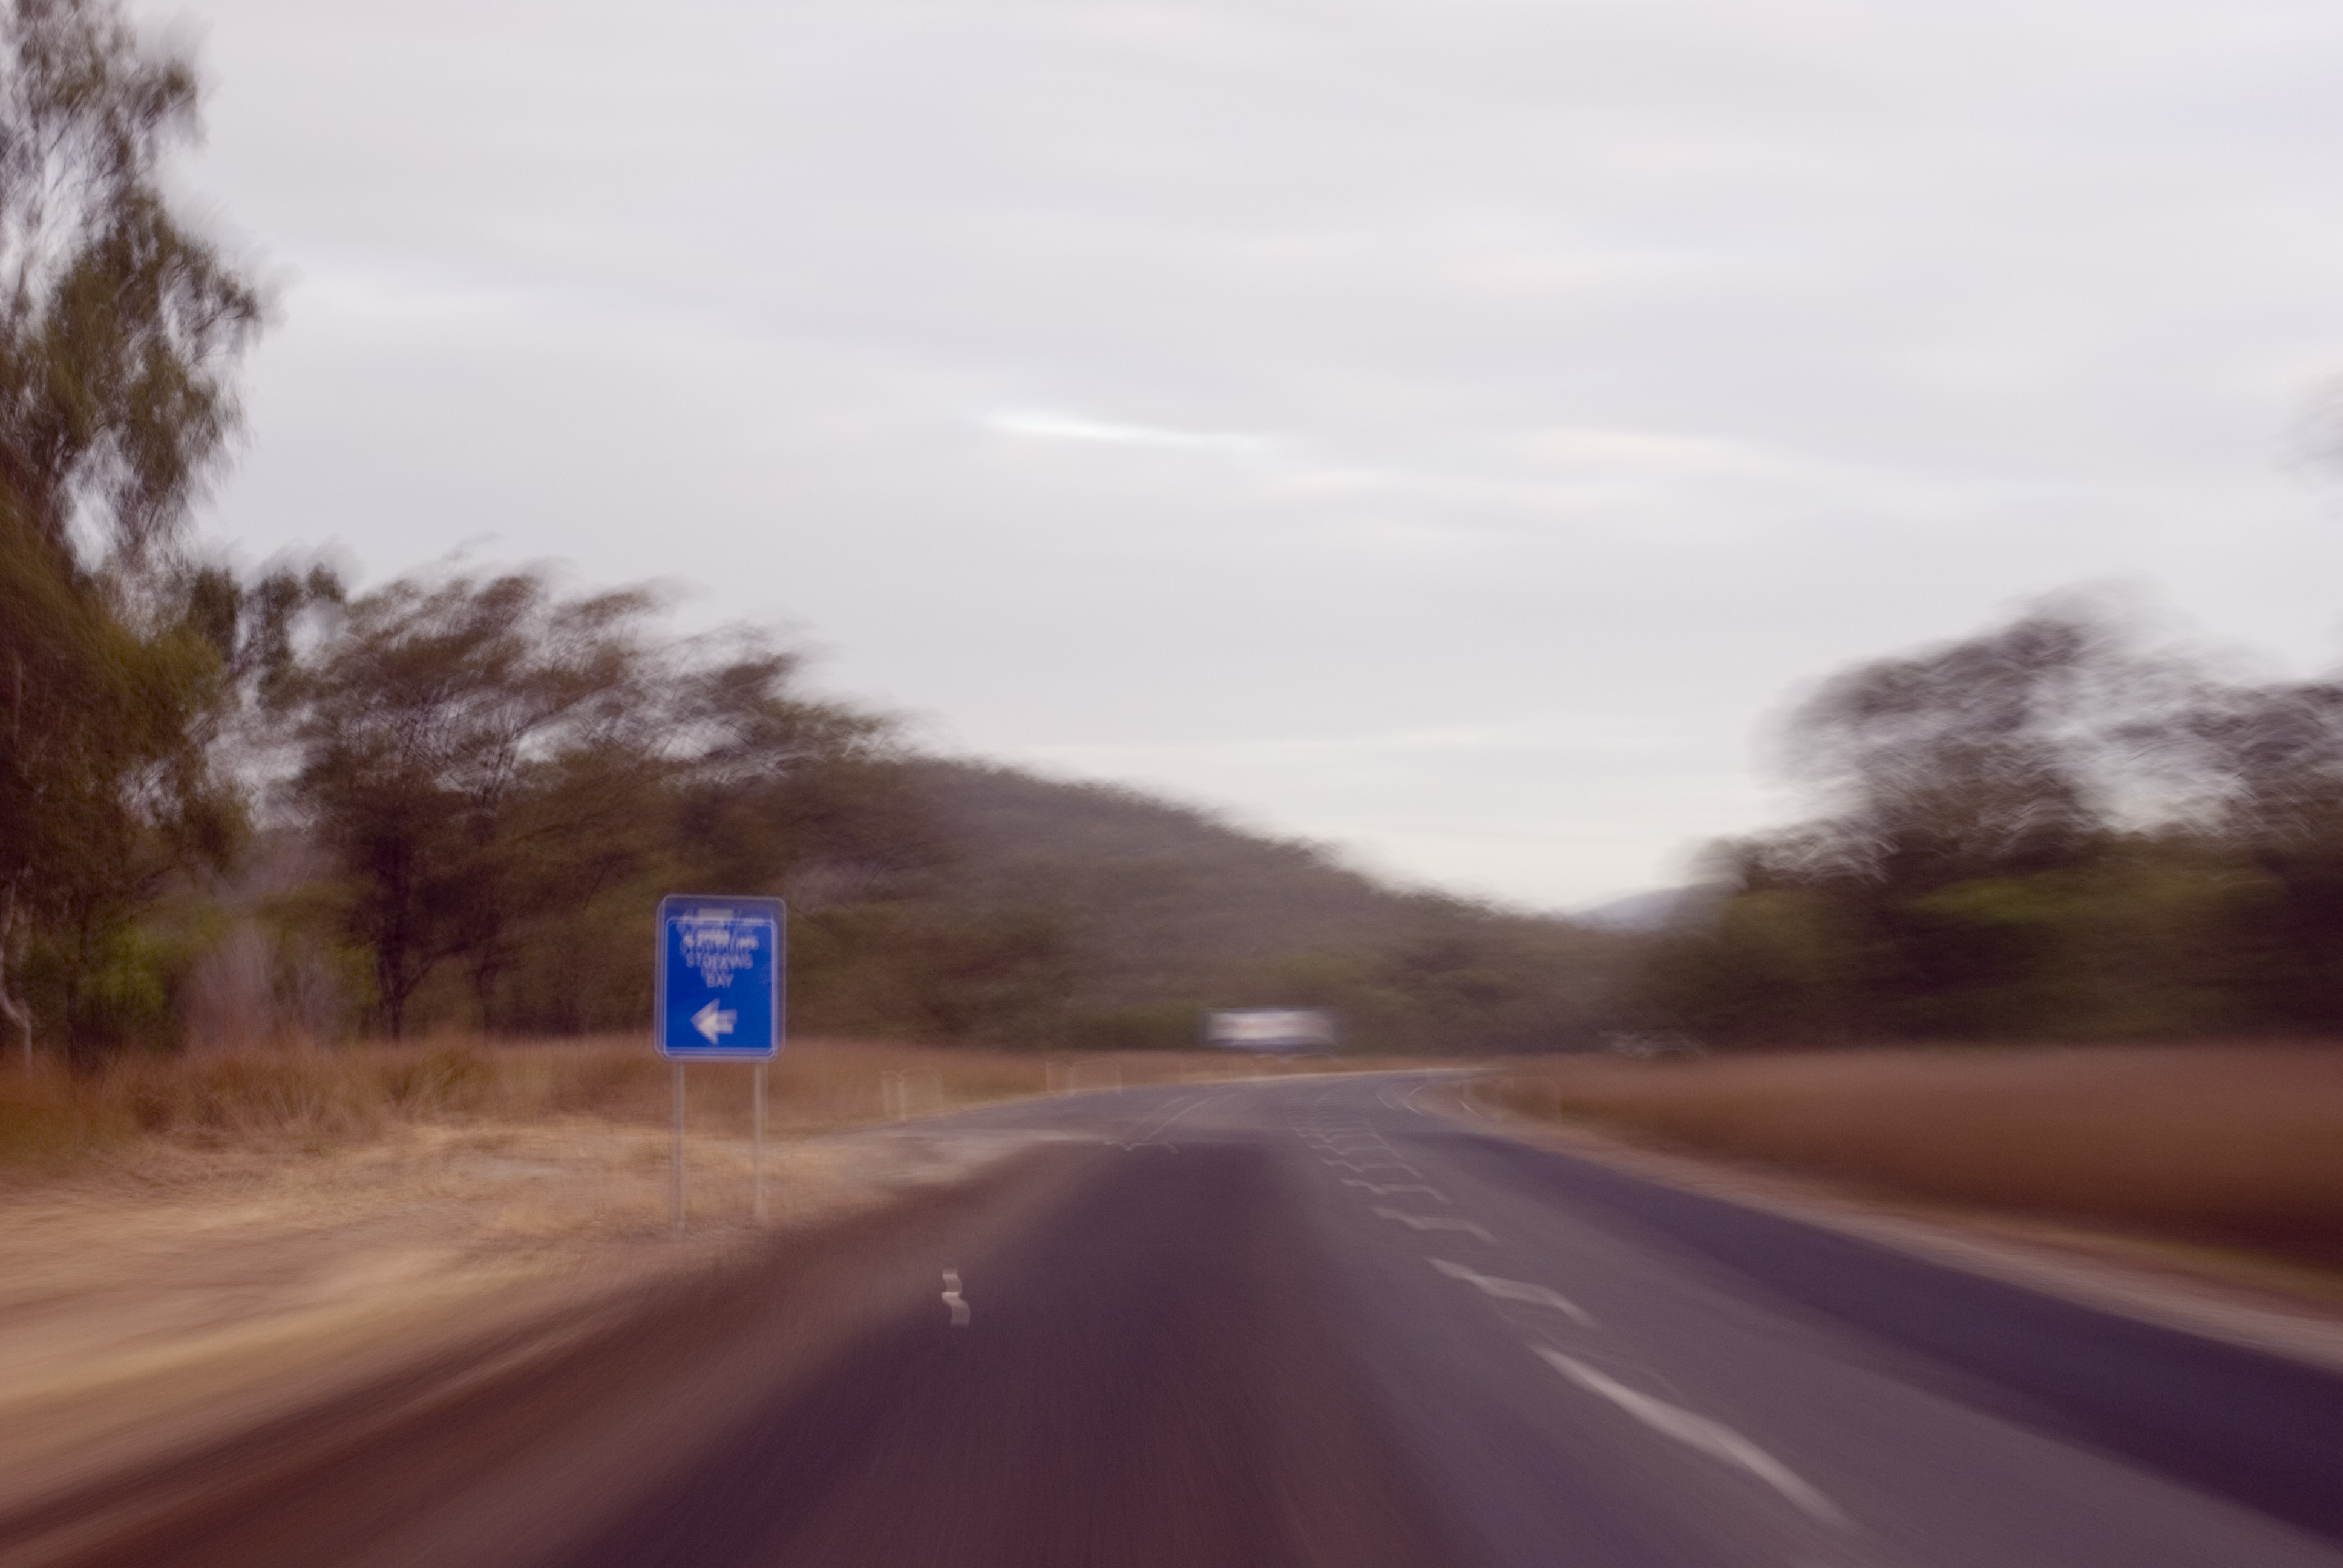 surreal blur on a long drive - blue road sign